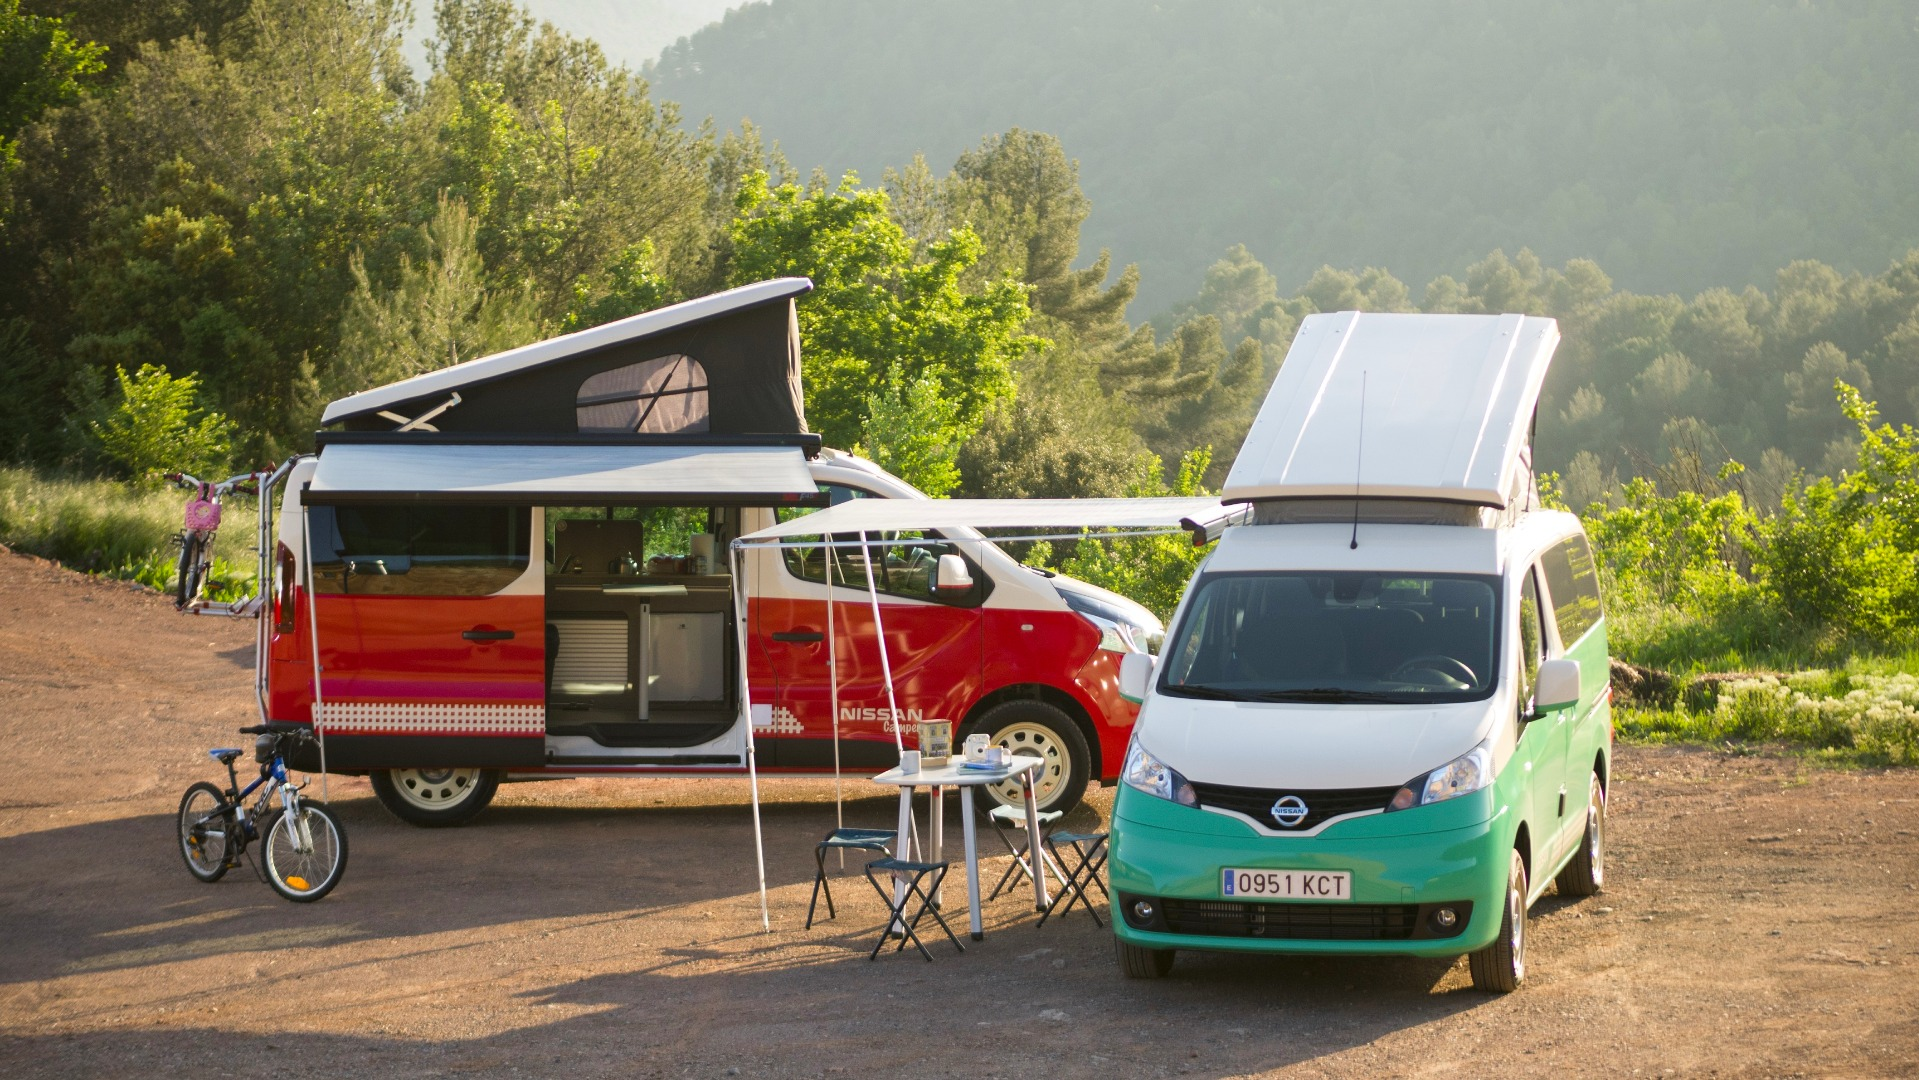 Nissan takes camper vans fully electric with new e-NV200 pop-top